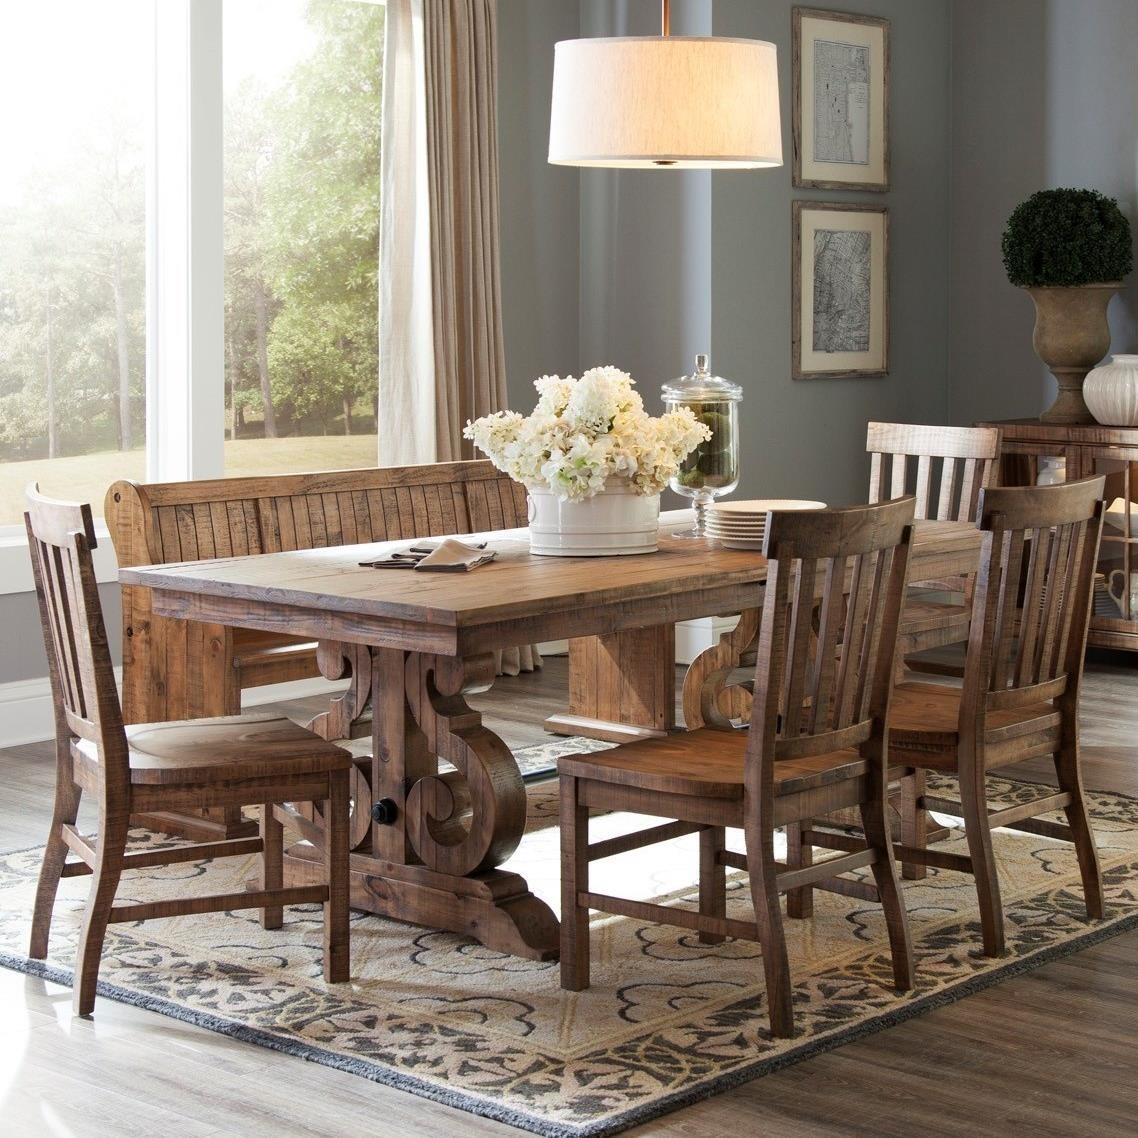 Magnussen Home Willoughby Solid Pine 6 Piece Table Set With Bench